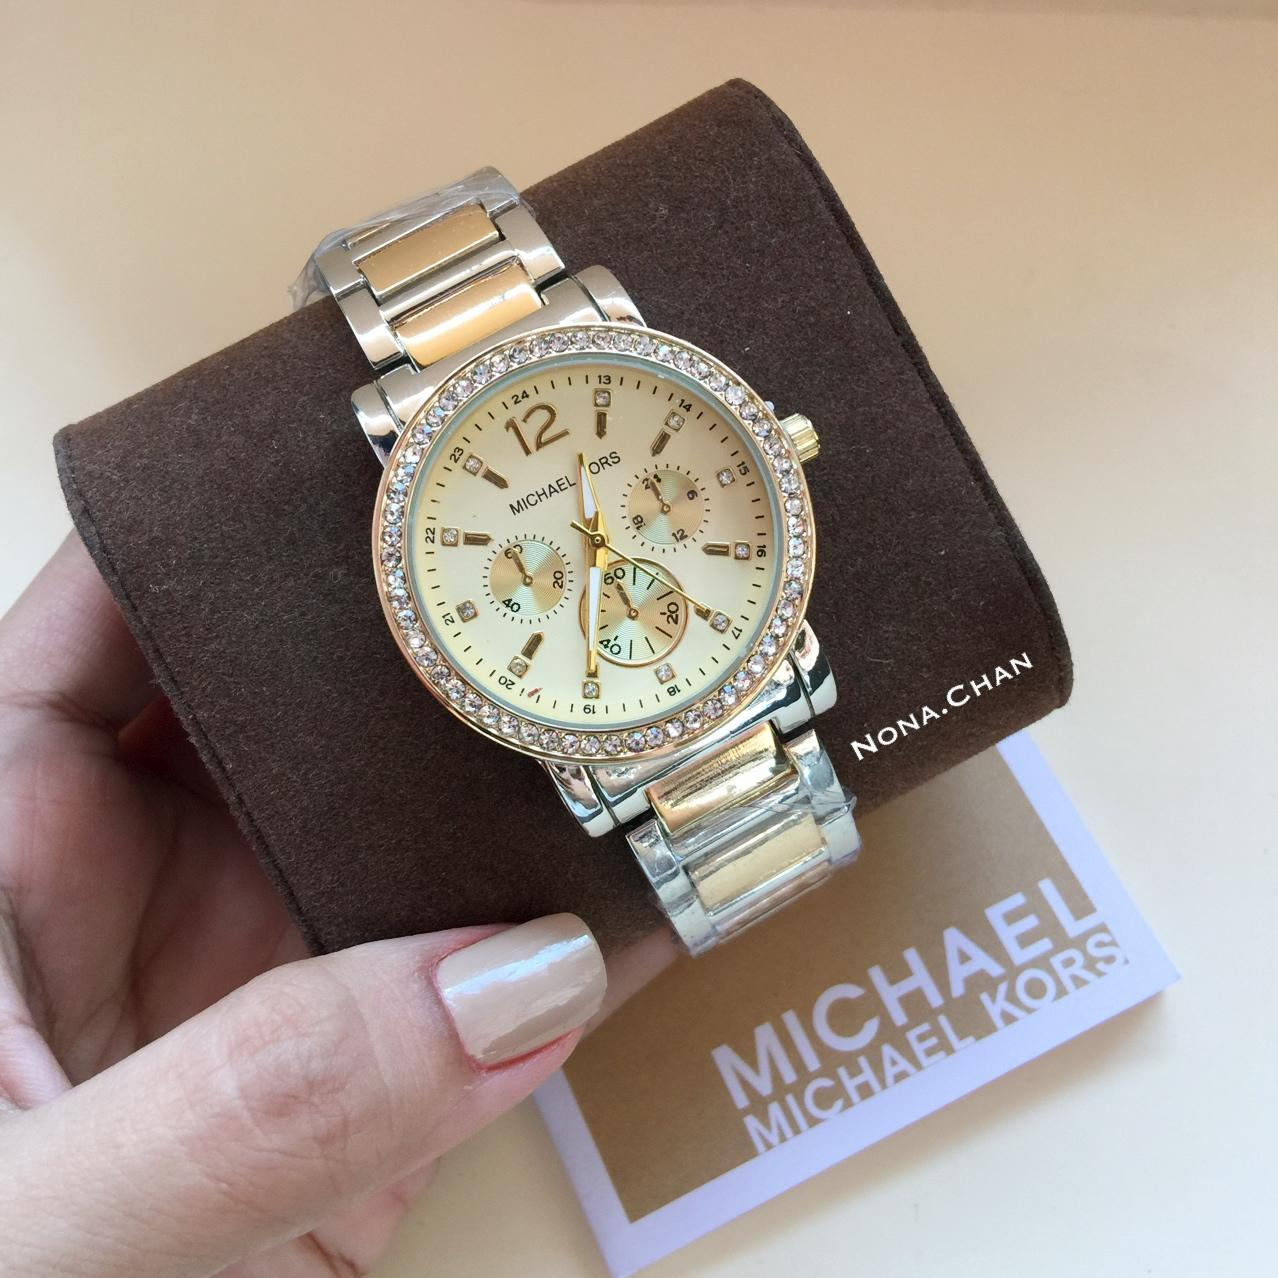 New MK Watch W/ Stones Stainless